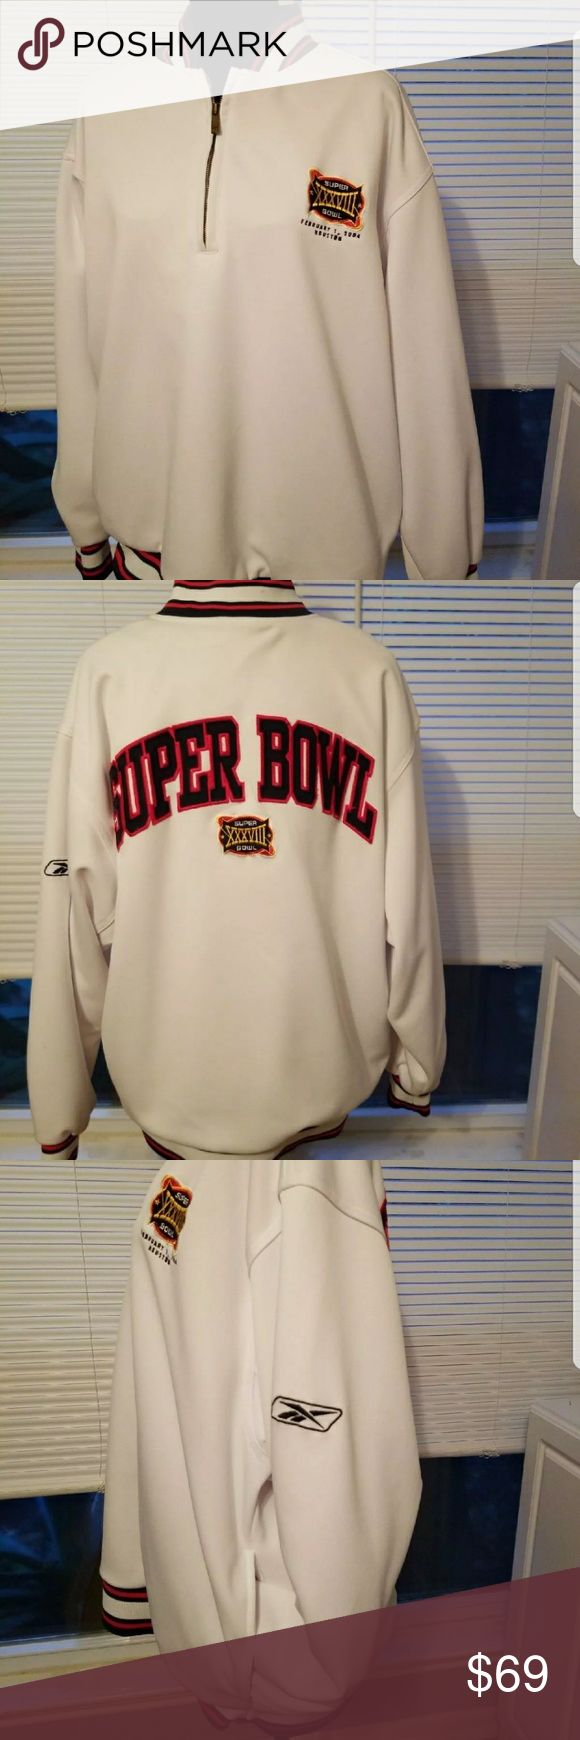 Super Bowl XXXVIII Pullover Reebok A great Super Bowl XXXVIII Pullover Warmup Jacket. Mens Large. Soft 100% Polyester with 2 pockets and a zipper at the neck.  From 'Reebok Team Apparel'. Beautifully embroidered Front and Back. Has Super Bowl XXXVIII logo embroidered on the Front. Reebok Tops Sweatshirts & Hoodies